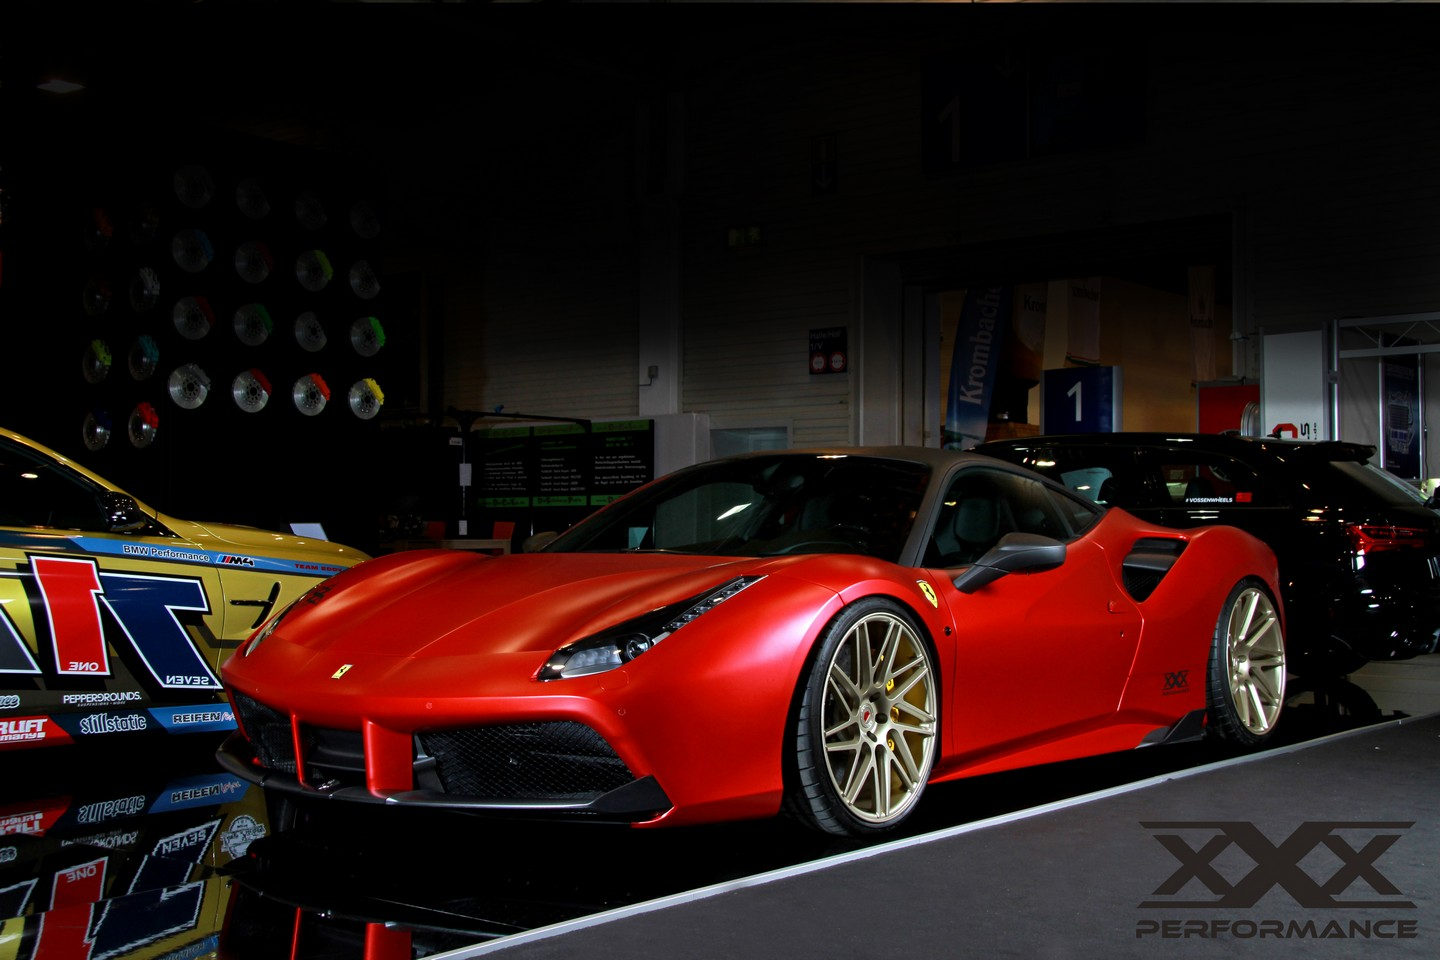 Ferrari-488-gtb-xxx-performance